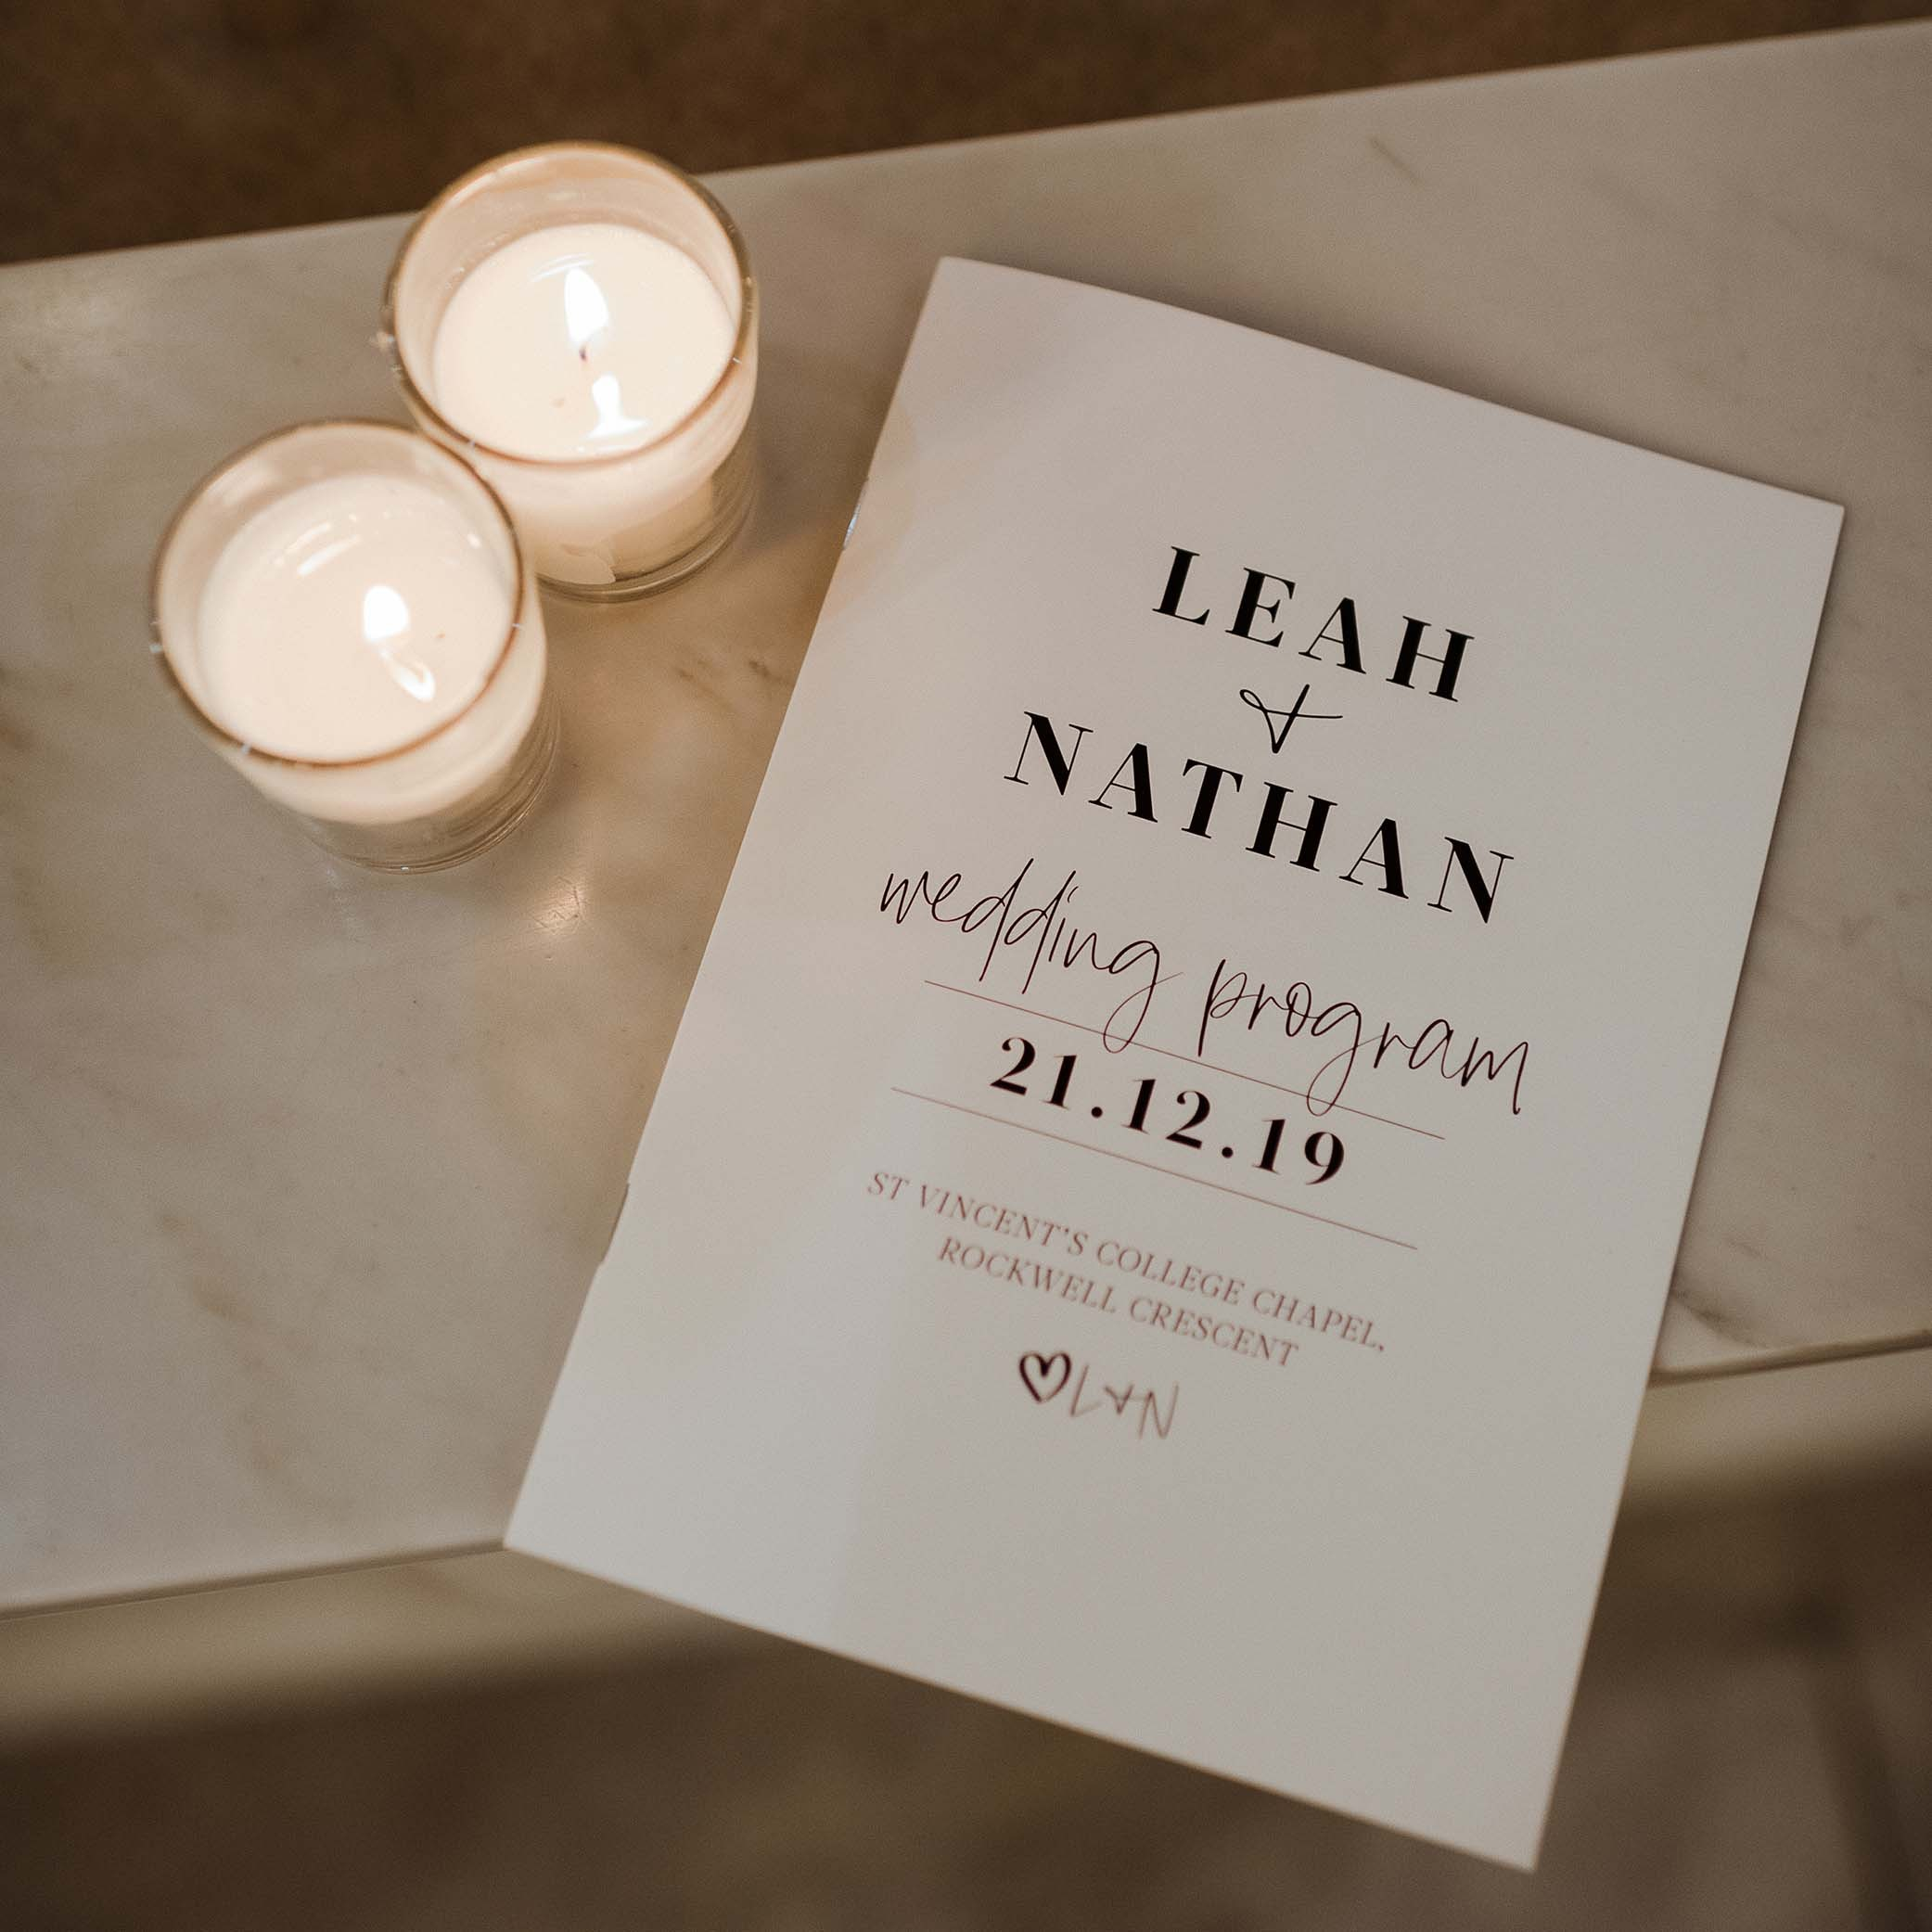 STATIONERY - A5 CEREMONY BOOKS | Leah + Nathan